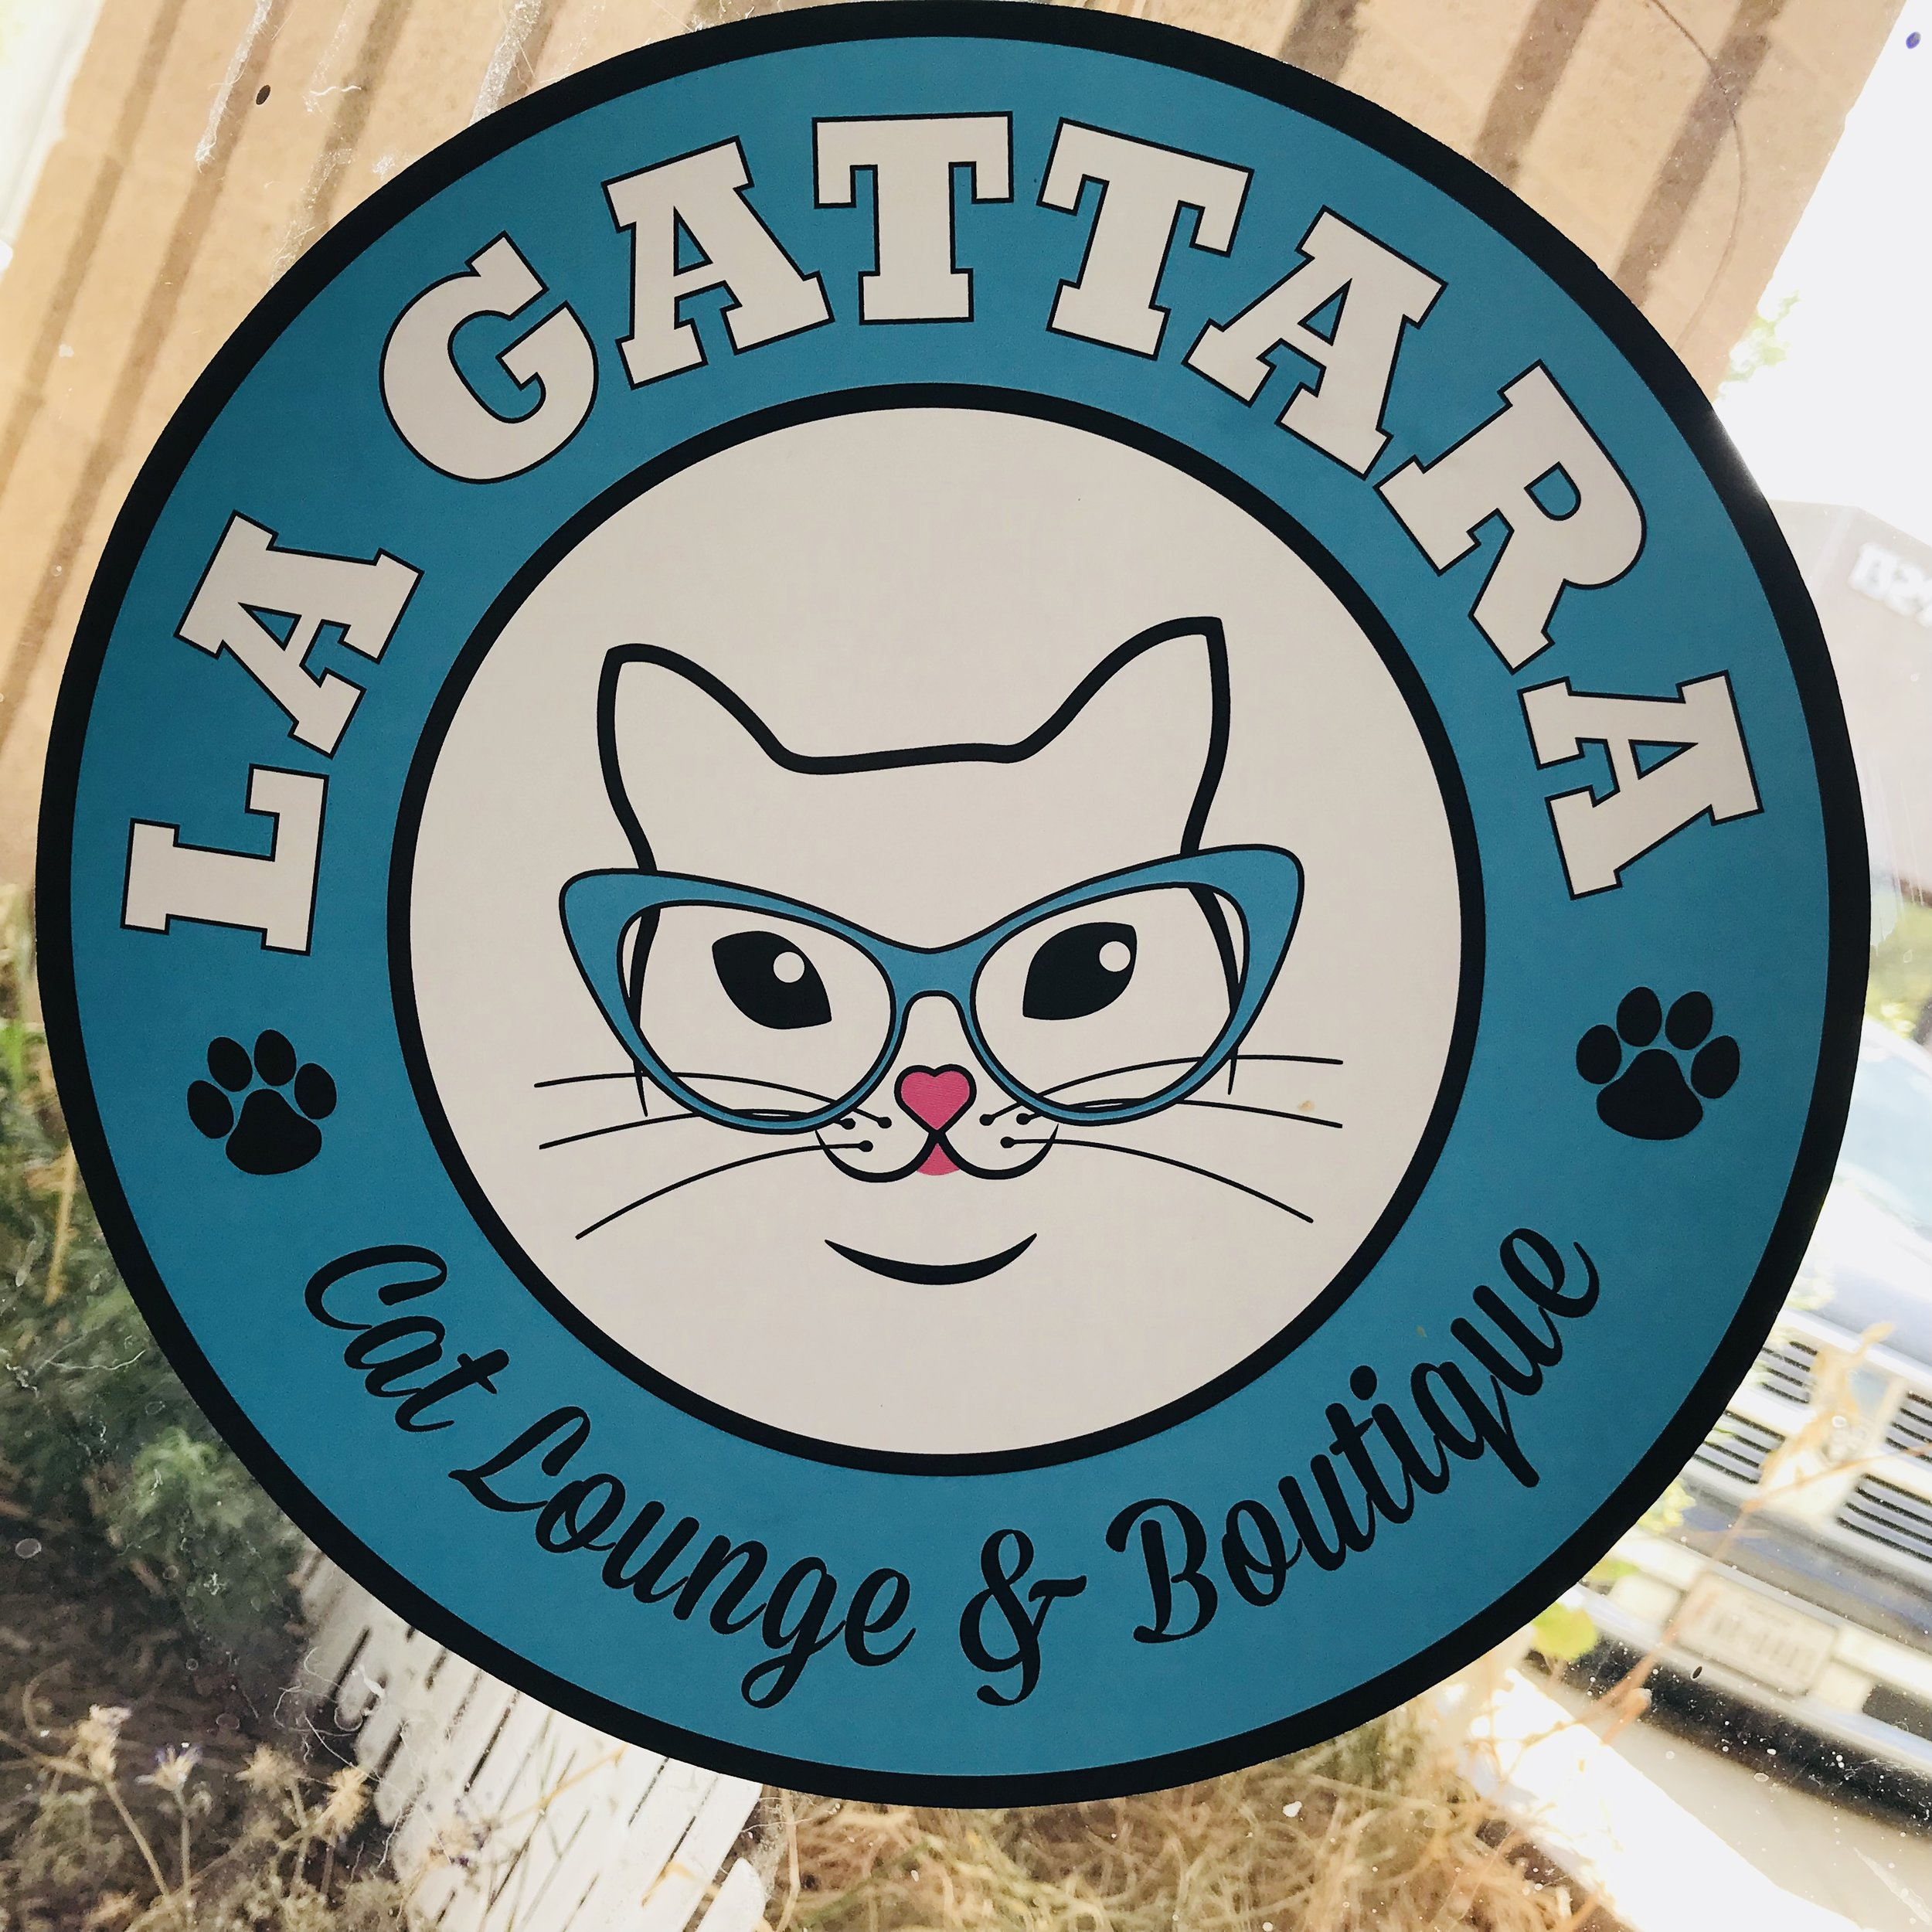 La Gattara Cat Lounge   Tempe, AZ, USA